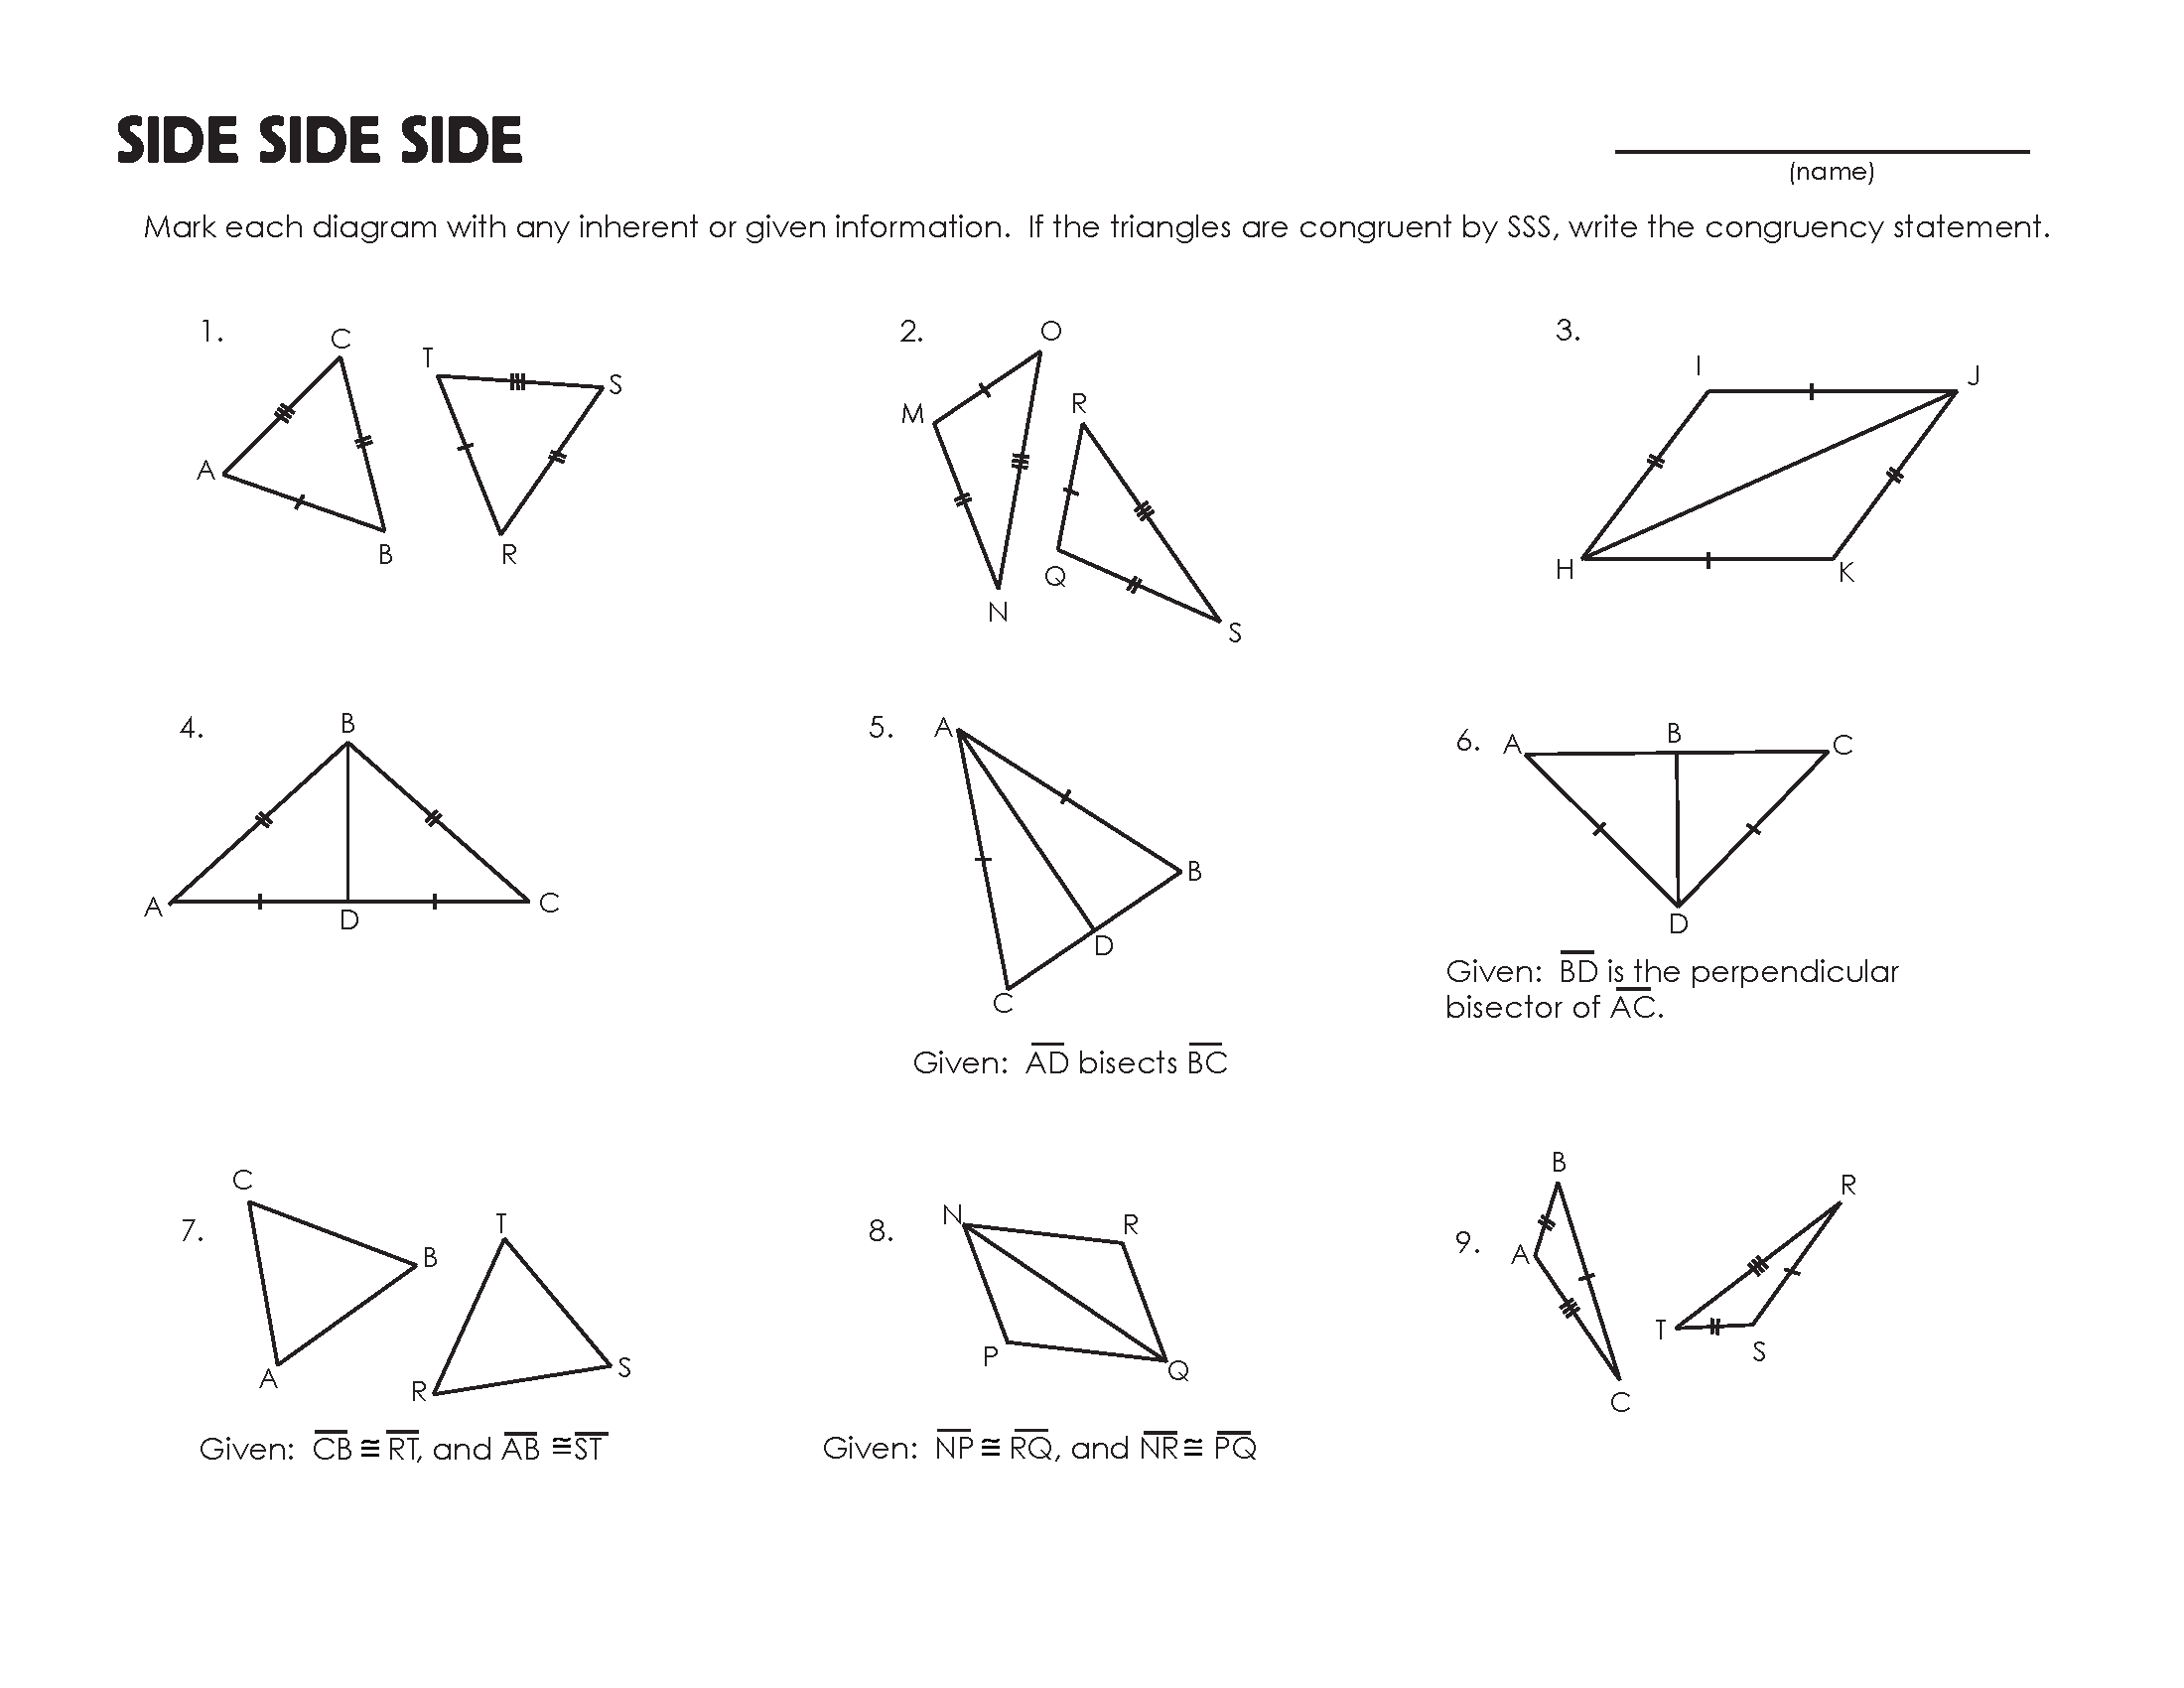 Congruent Triangles Worksheet | Congruent triangles ...